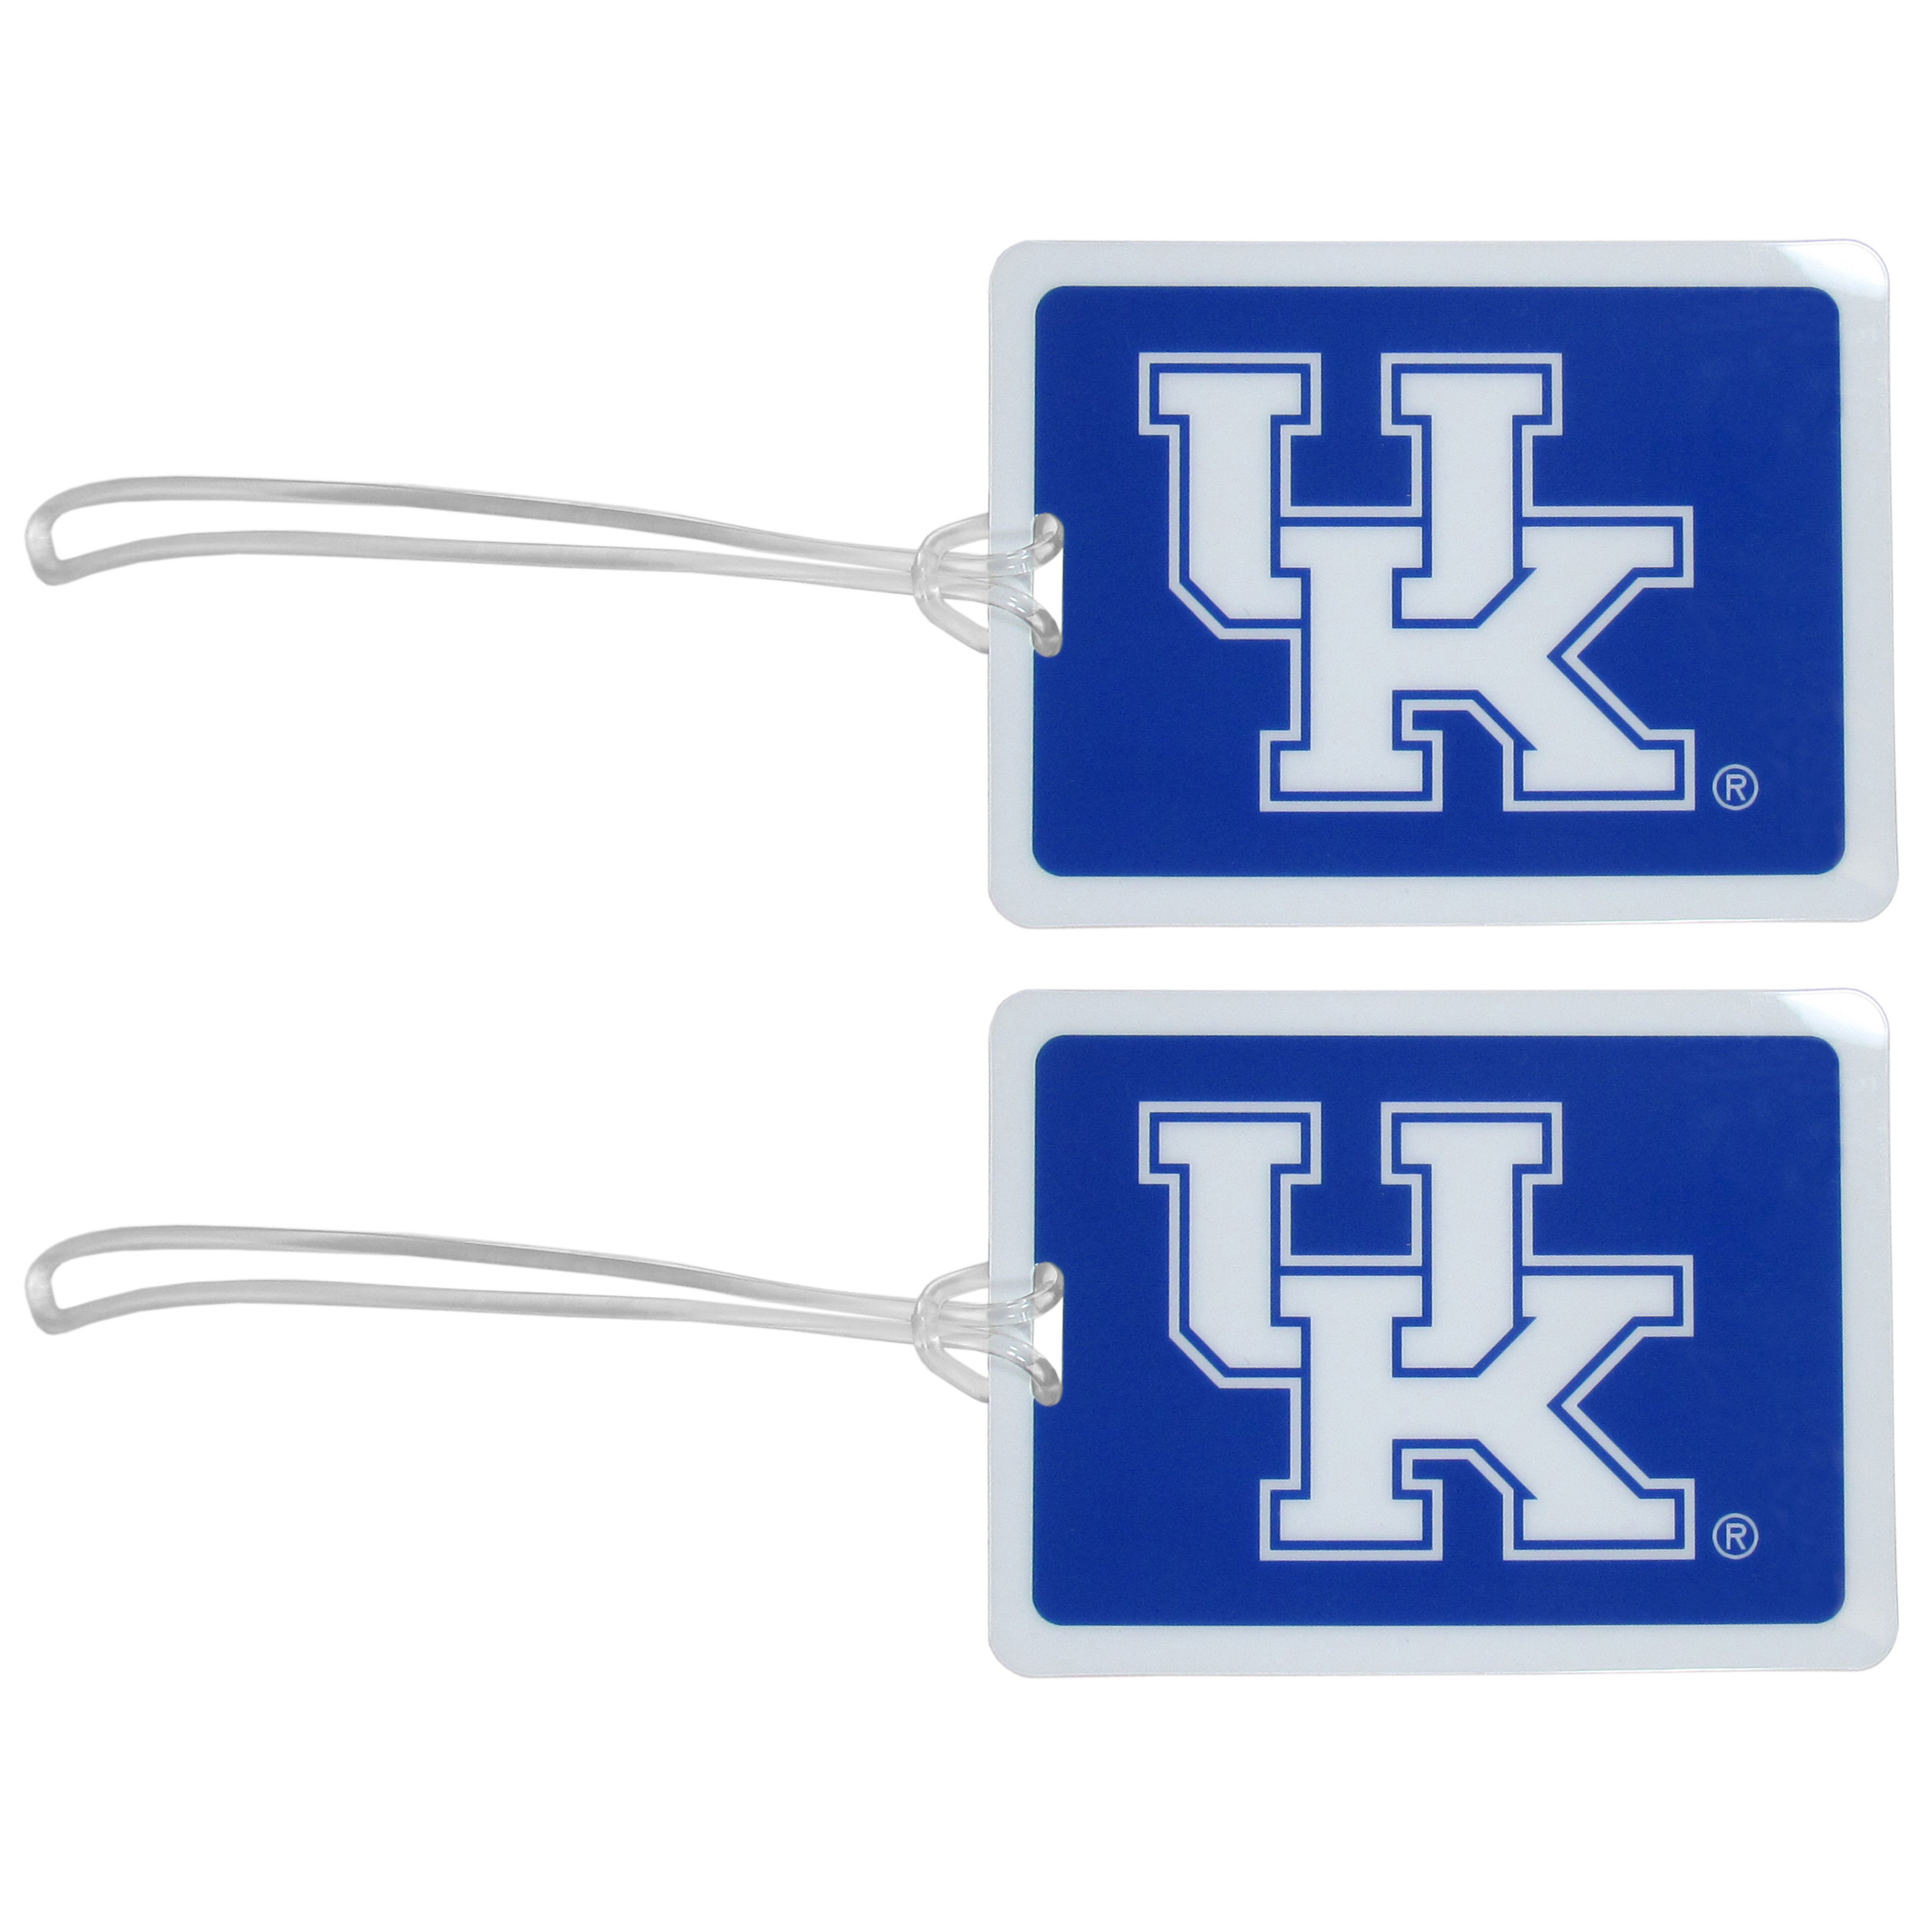 Kentucky Wildcats Vinyl Luggage Tag, 2pk - Tired of trying to spot your suitcase or bag in a sea of luggage? Try our large and colorful Kentucky Wildcats luggage tags. The tag is 4x3 inches and has a 5 inch cord to attach it easily to your bags, backpacks or luggage. The front of the tag features the team logo in a bright, team colored background and you can write you name, address and phone number on the back of the tag.